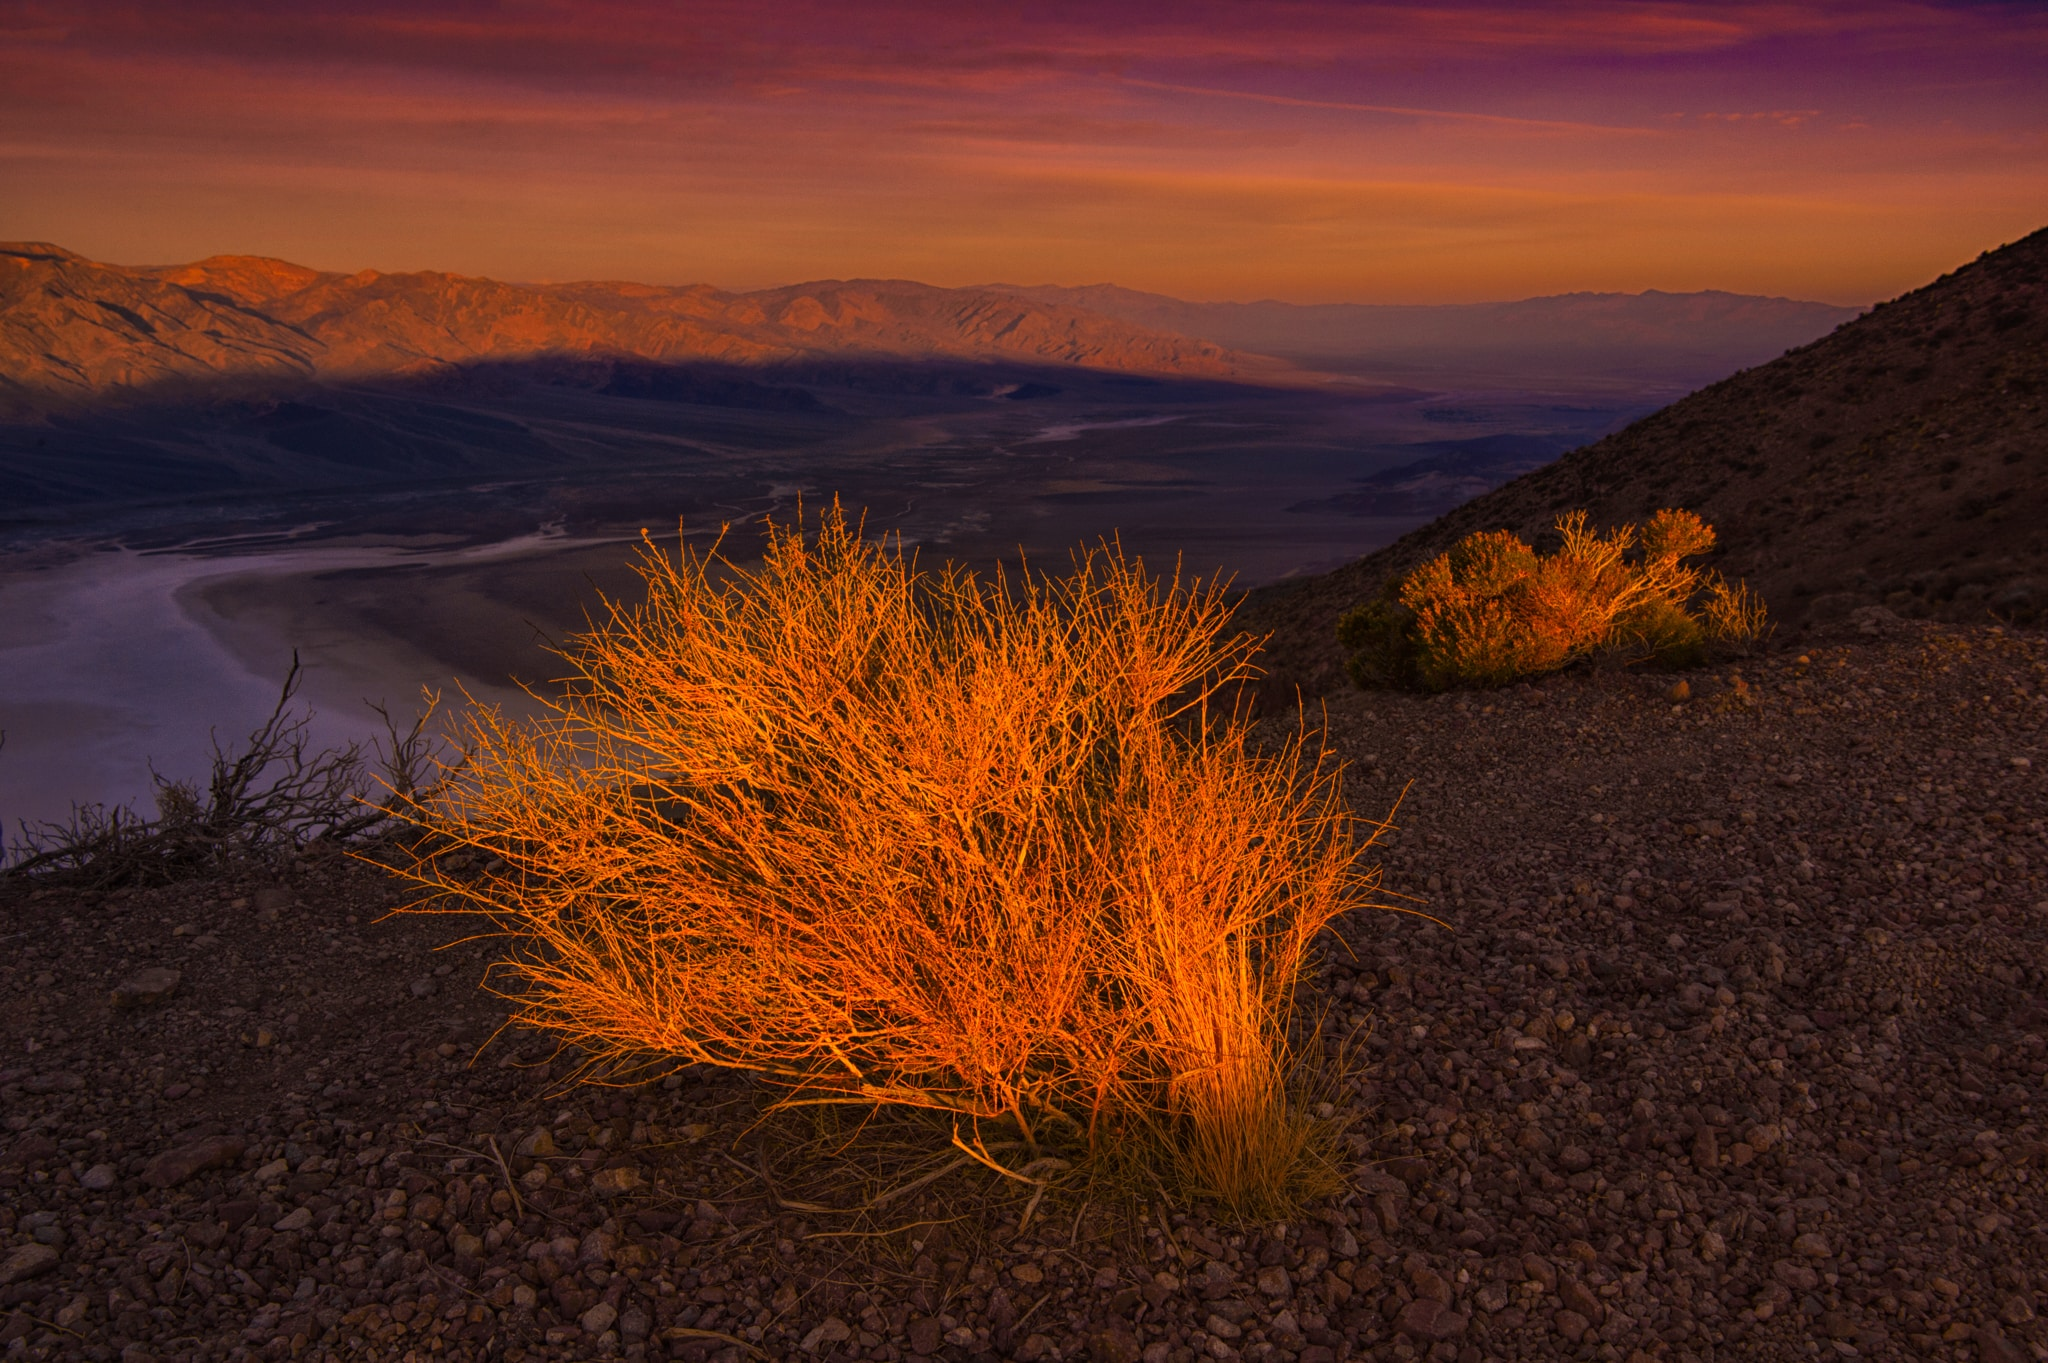 The rising sun illuminates desert brush at Dante's View, in the Black Mountains, 13 miles southwest of Highway 190 in Death Valley National Park, California.